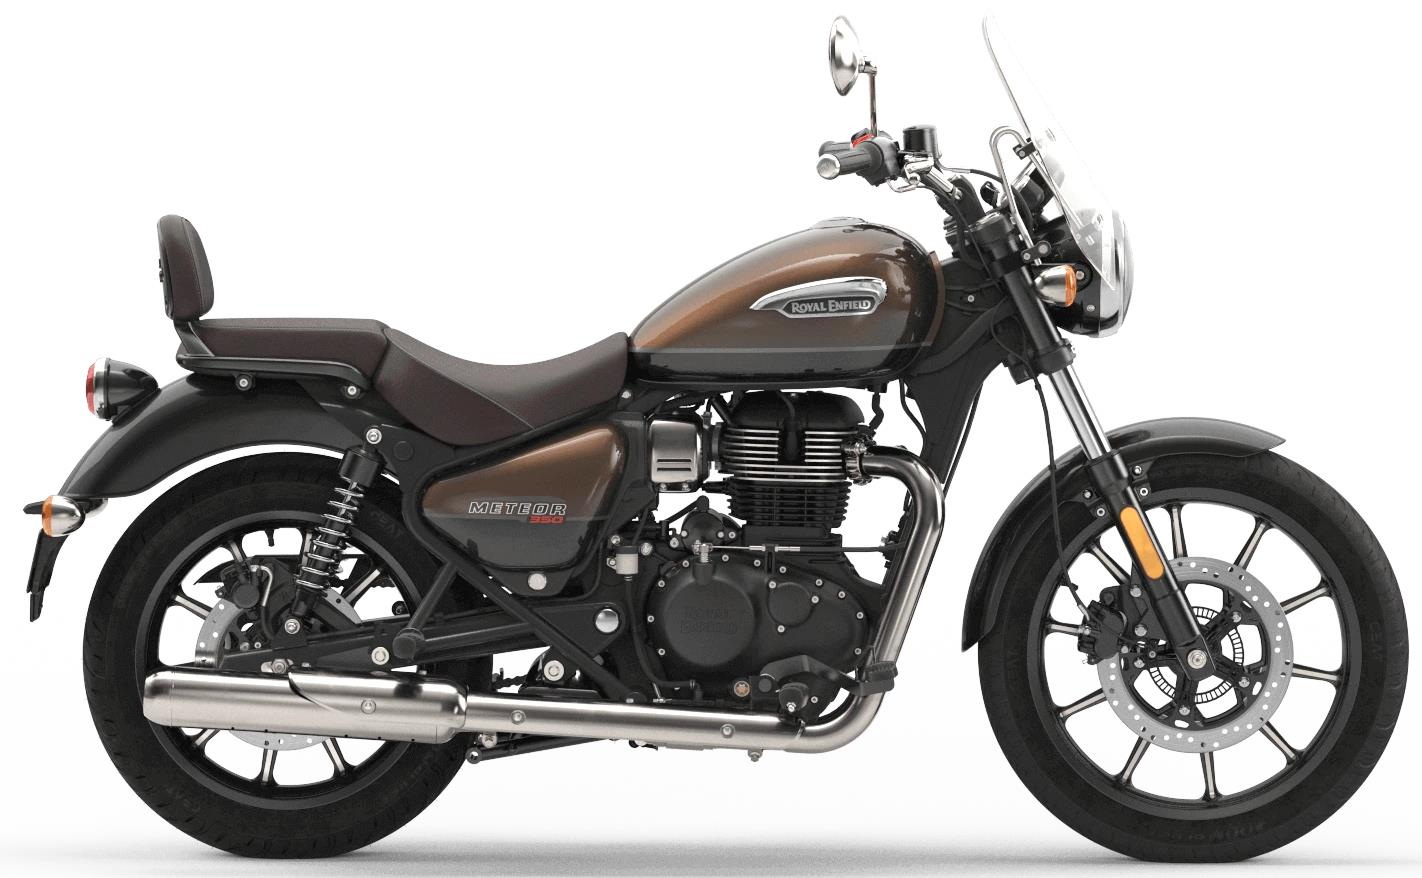 Top 20 Best Bikes Under INR 2 Lakh in India